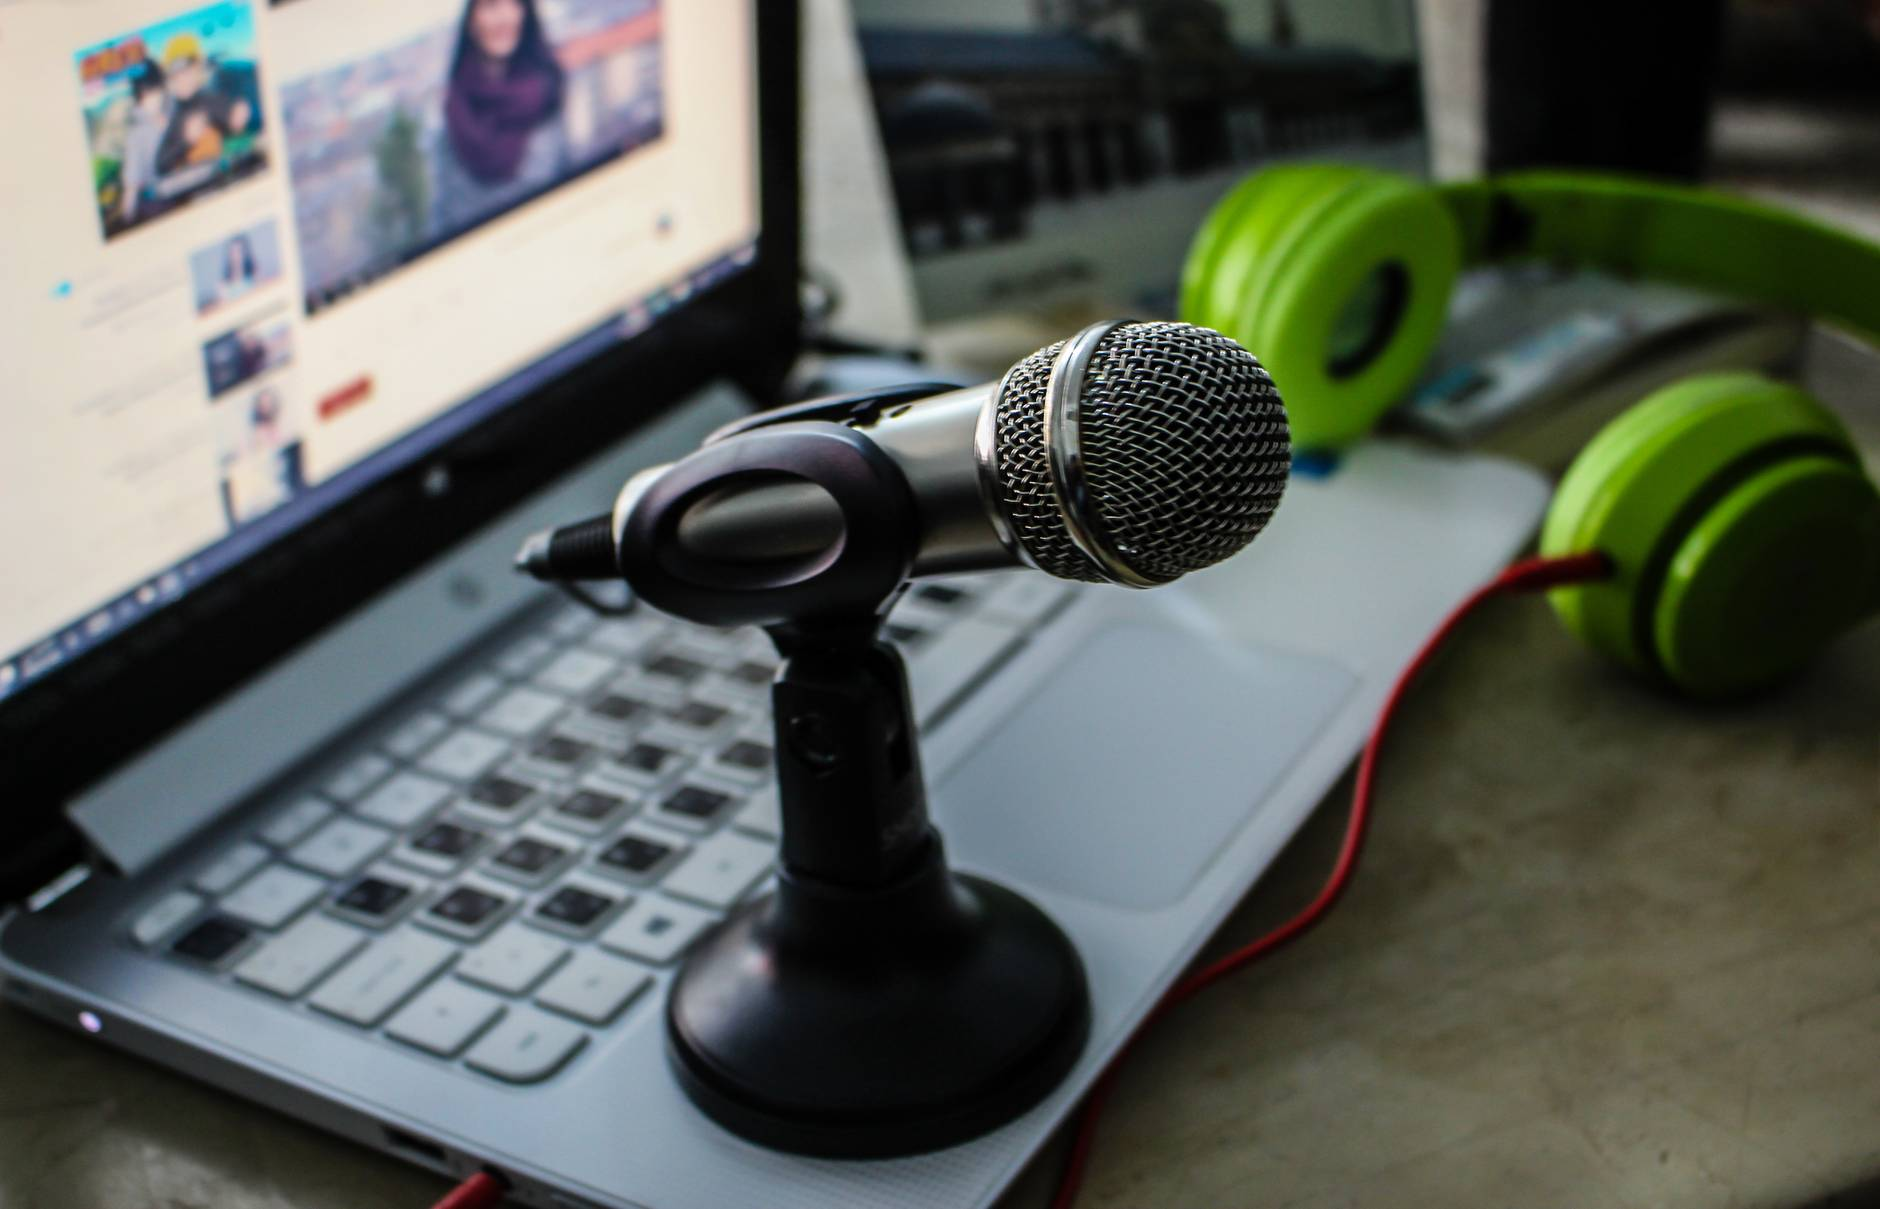 microphone on laptop